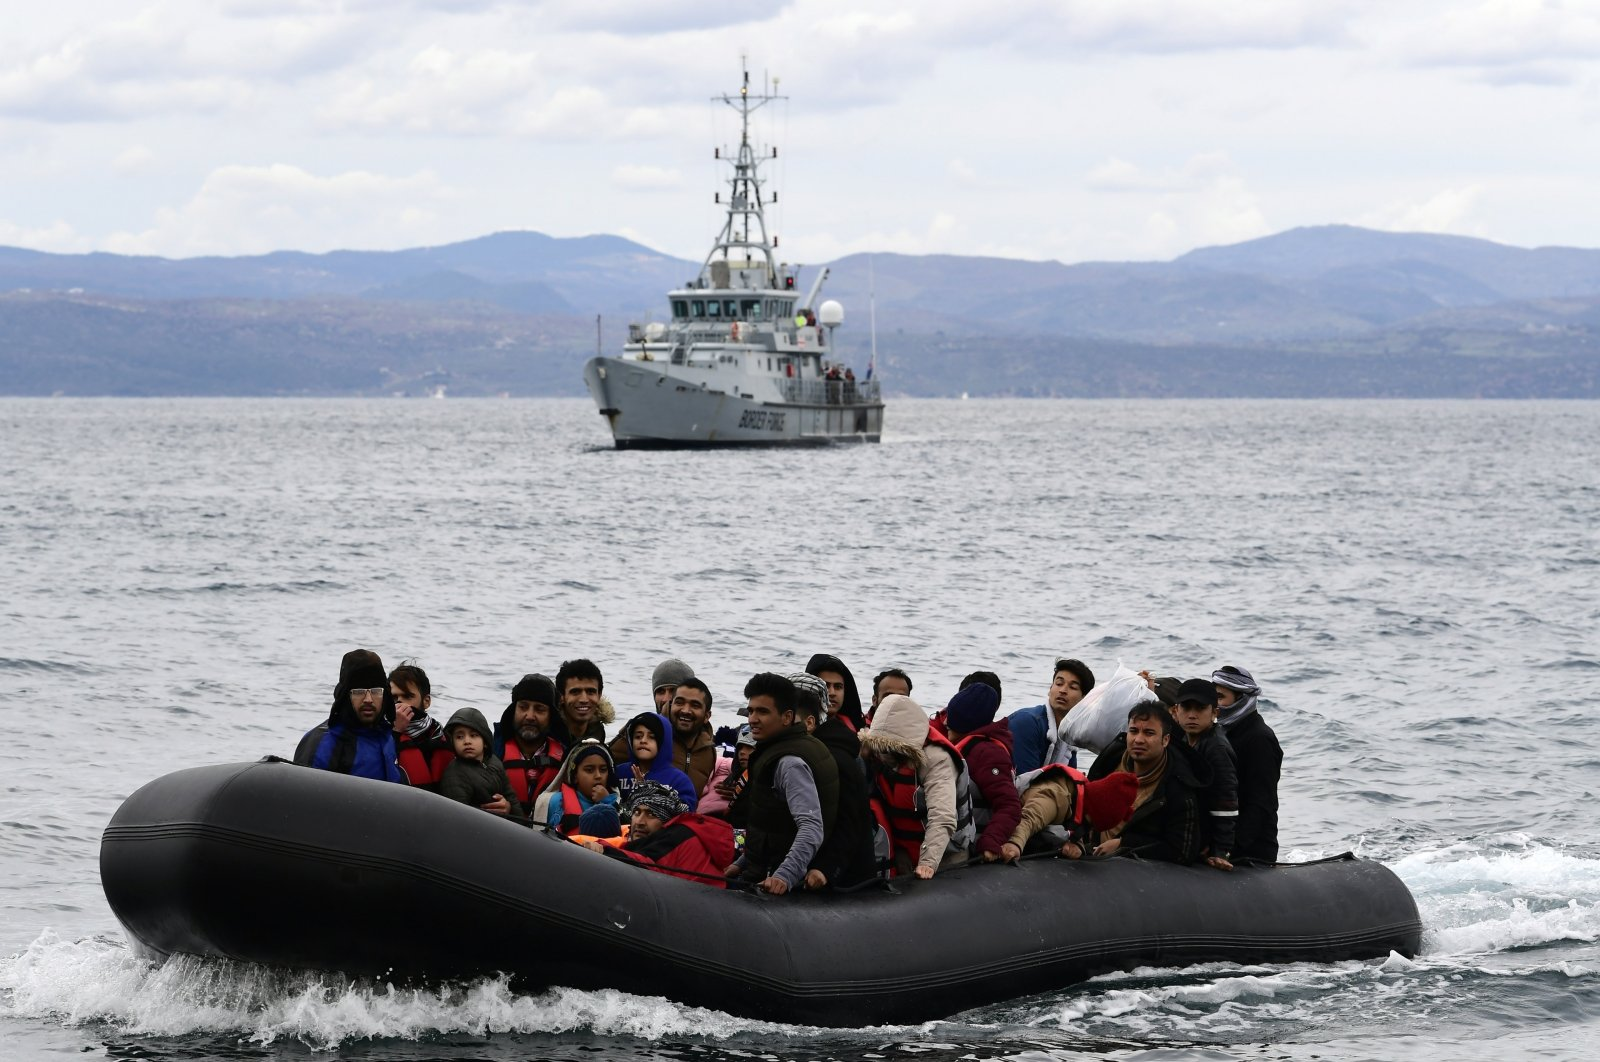 Migrants arrive in a dinghy accompanied by a Frontex vessel at the village of Skala Sikaminias, on the Greek island of Lesbos, Feb. 28, 2020. (AP Photo)